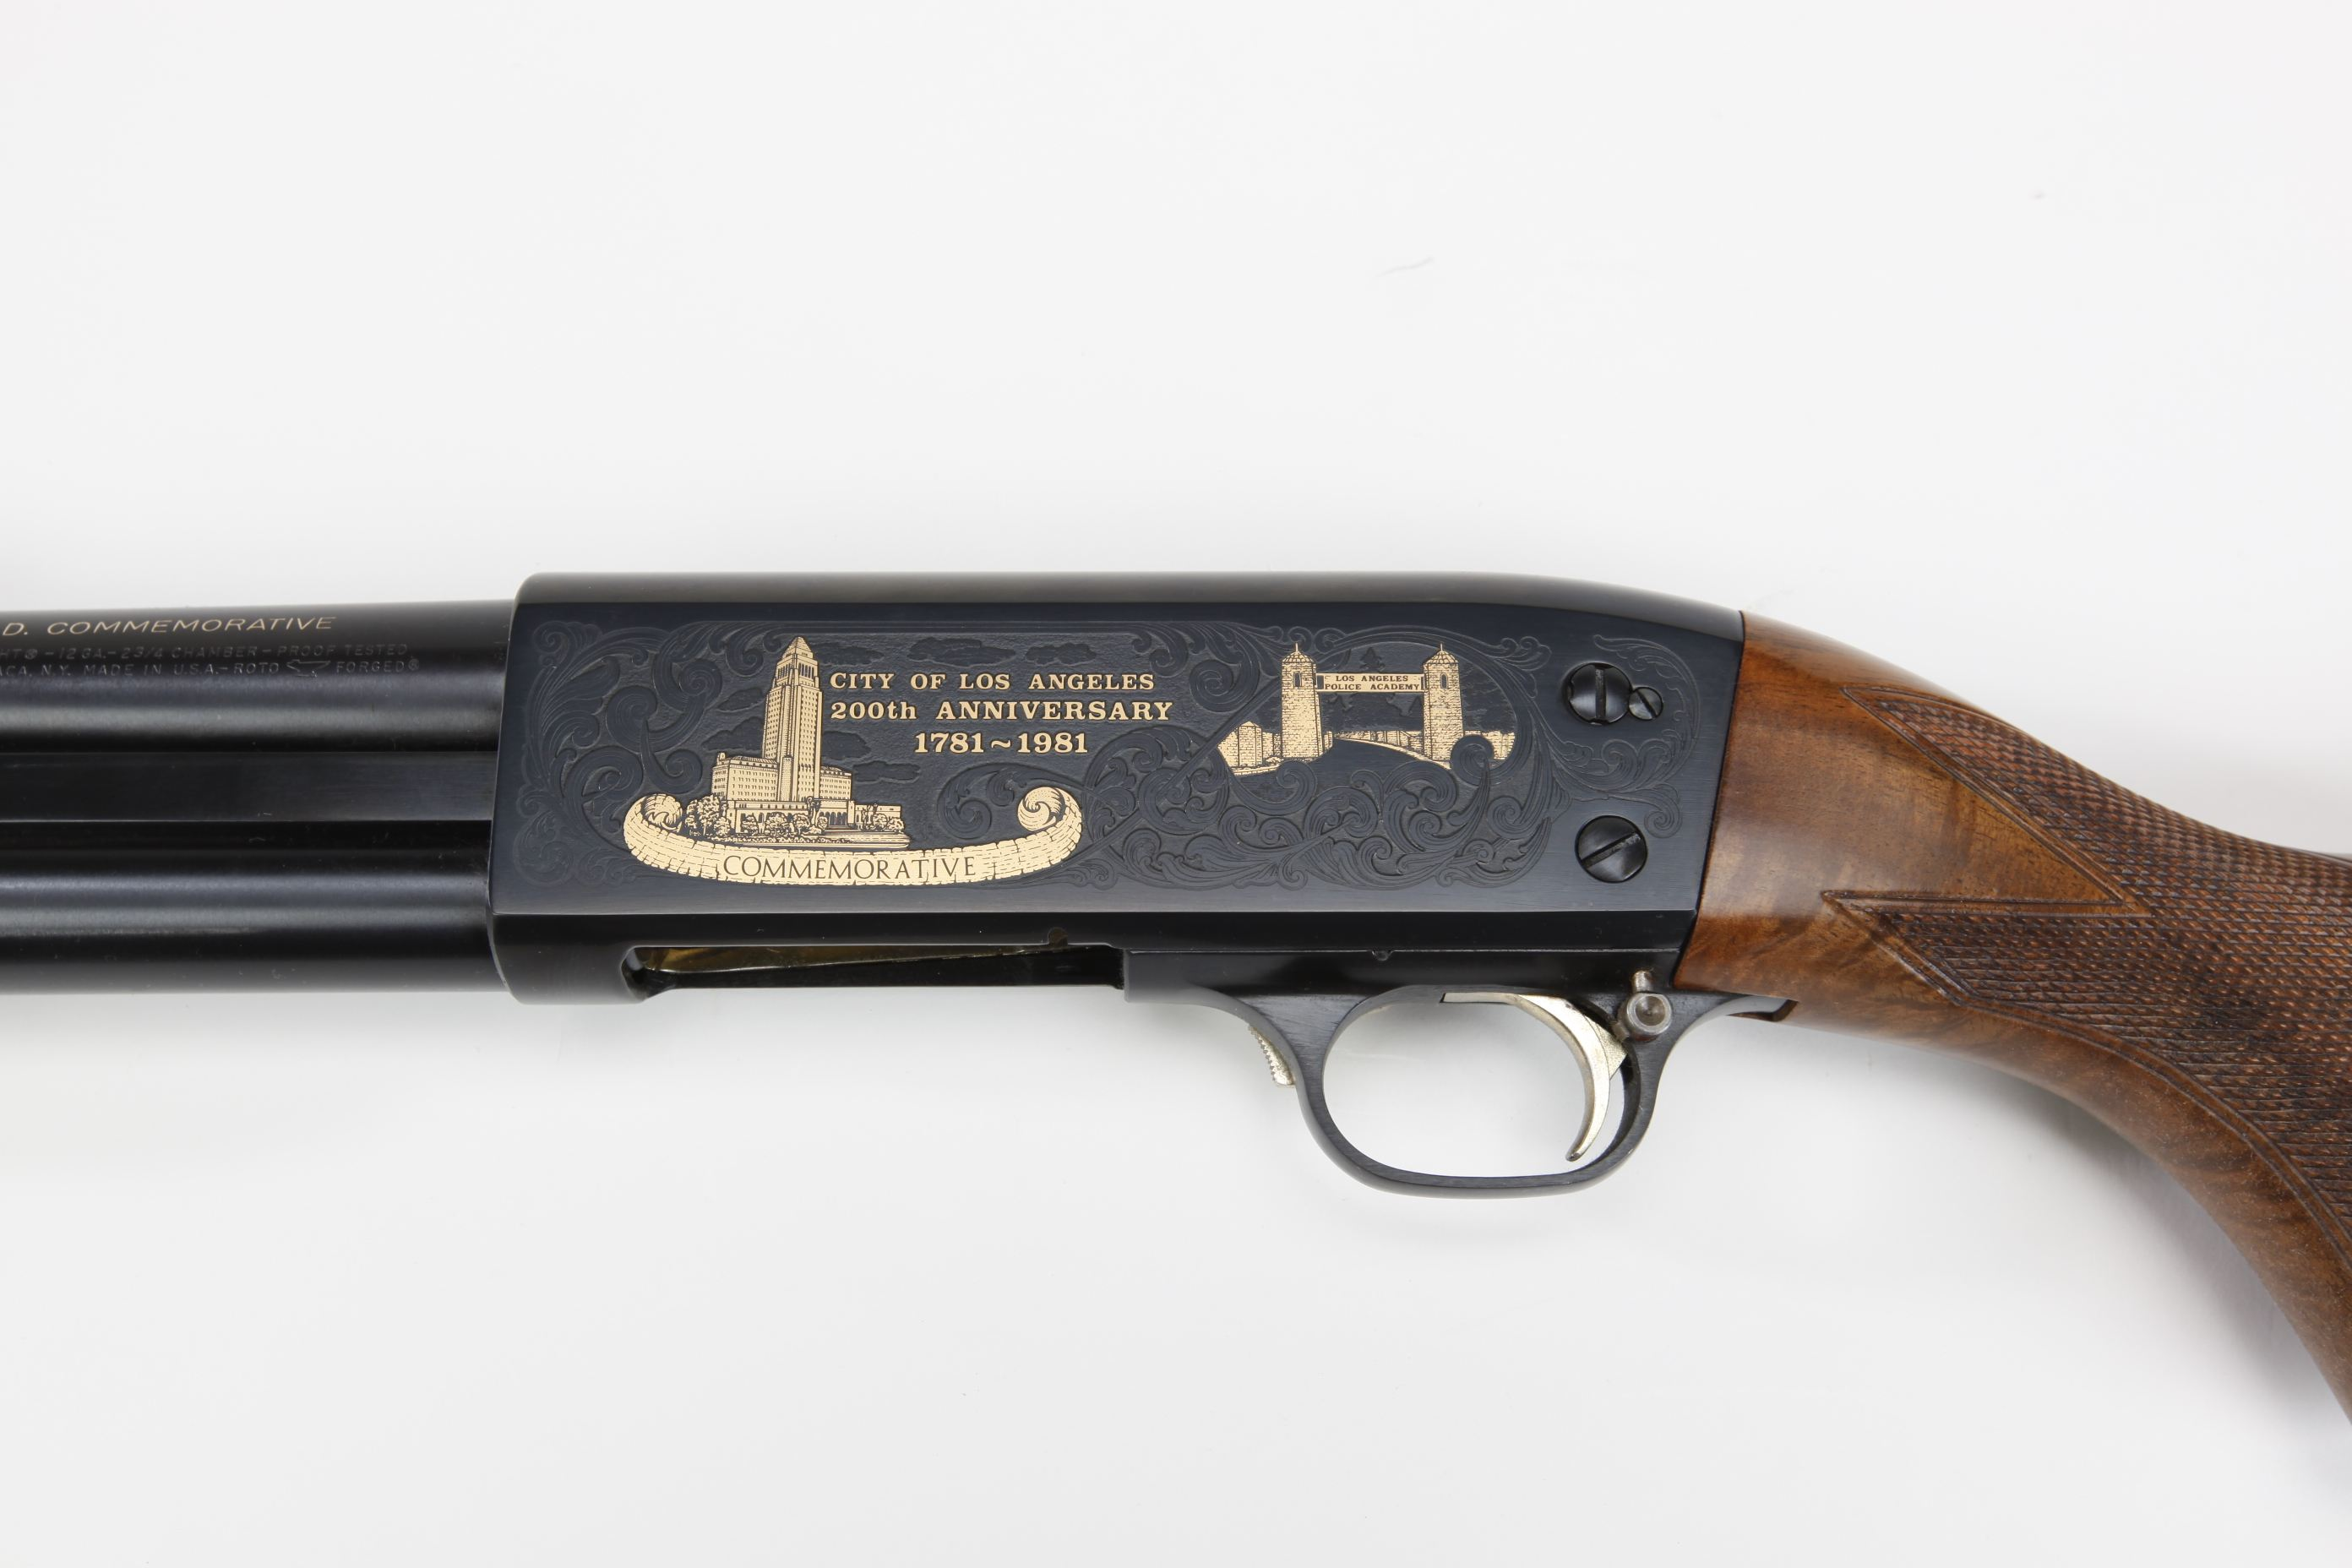 Ithaca Model 37 Slide Action Shotgun